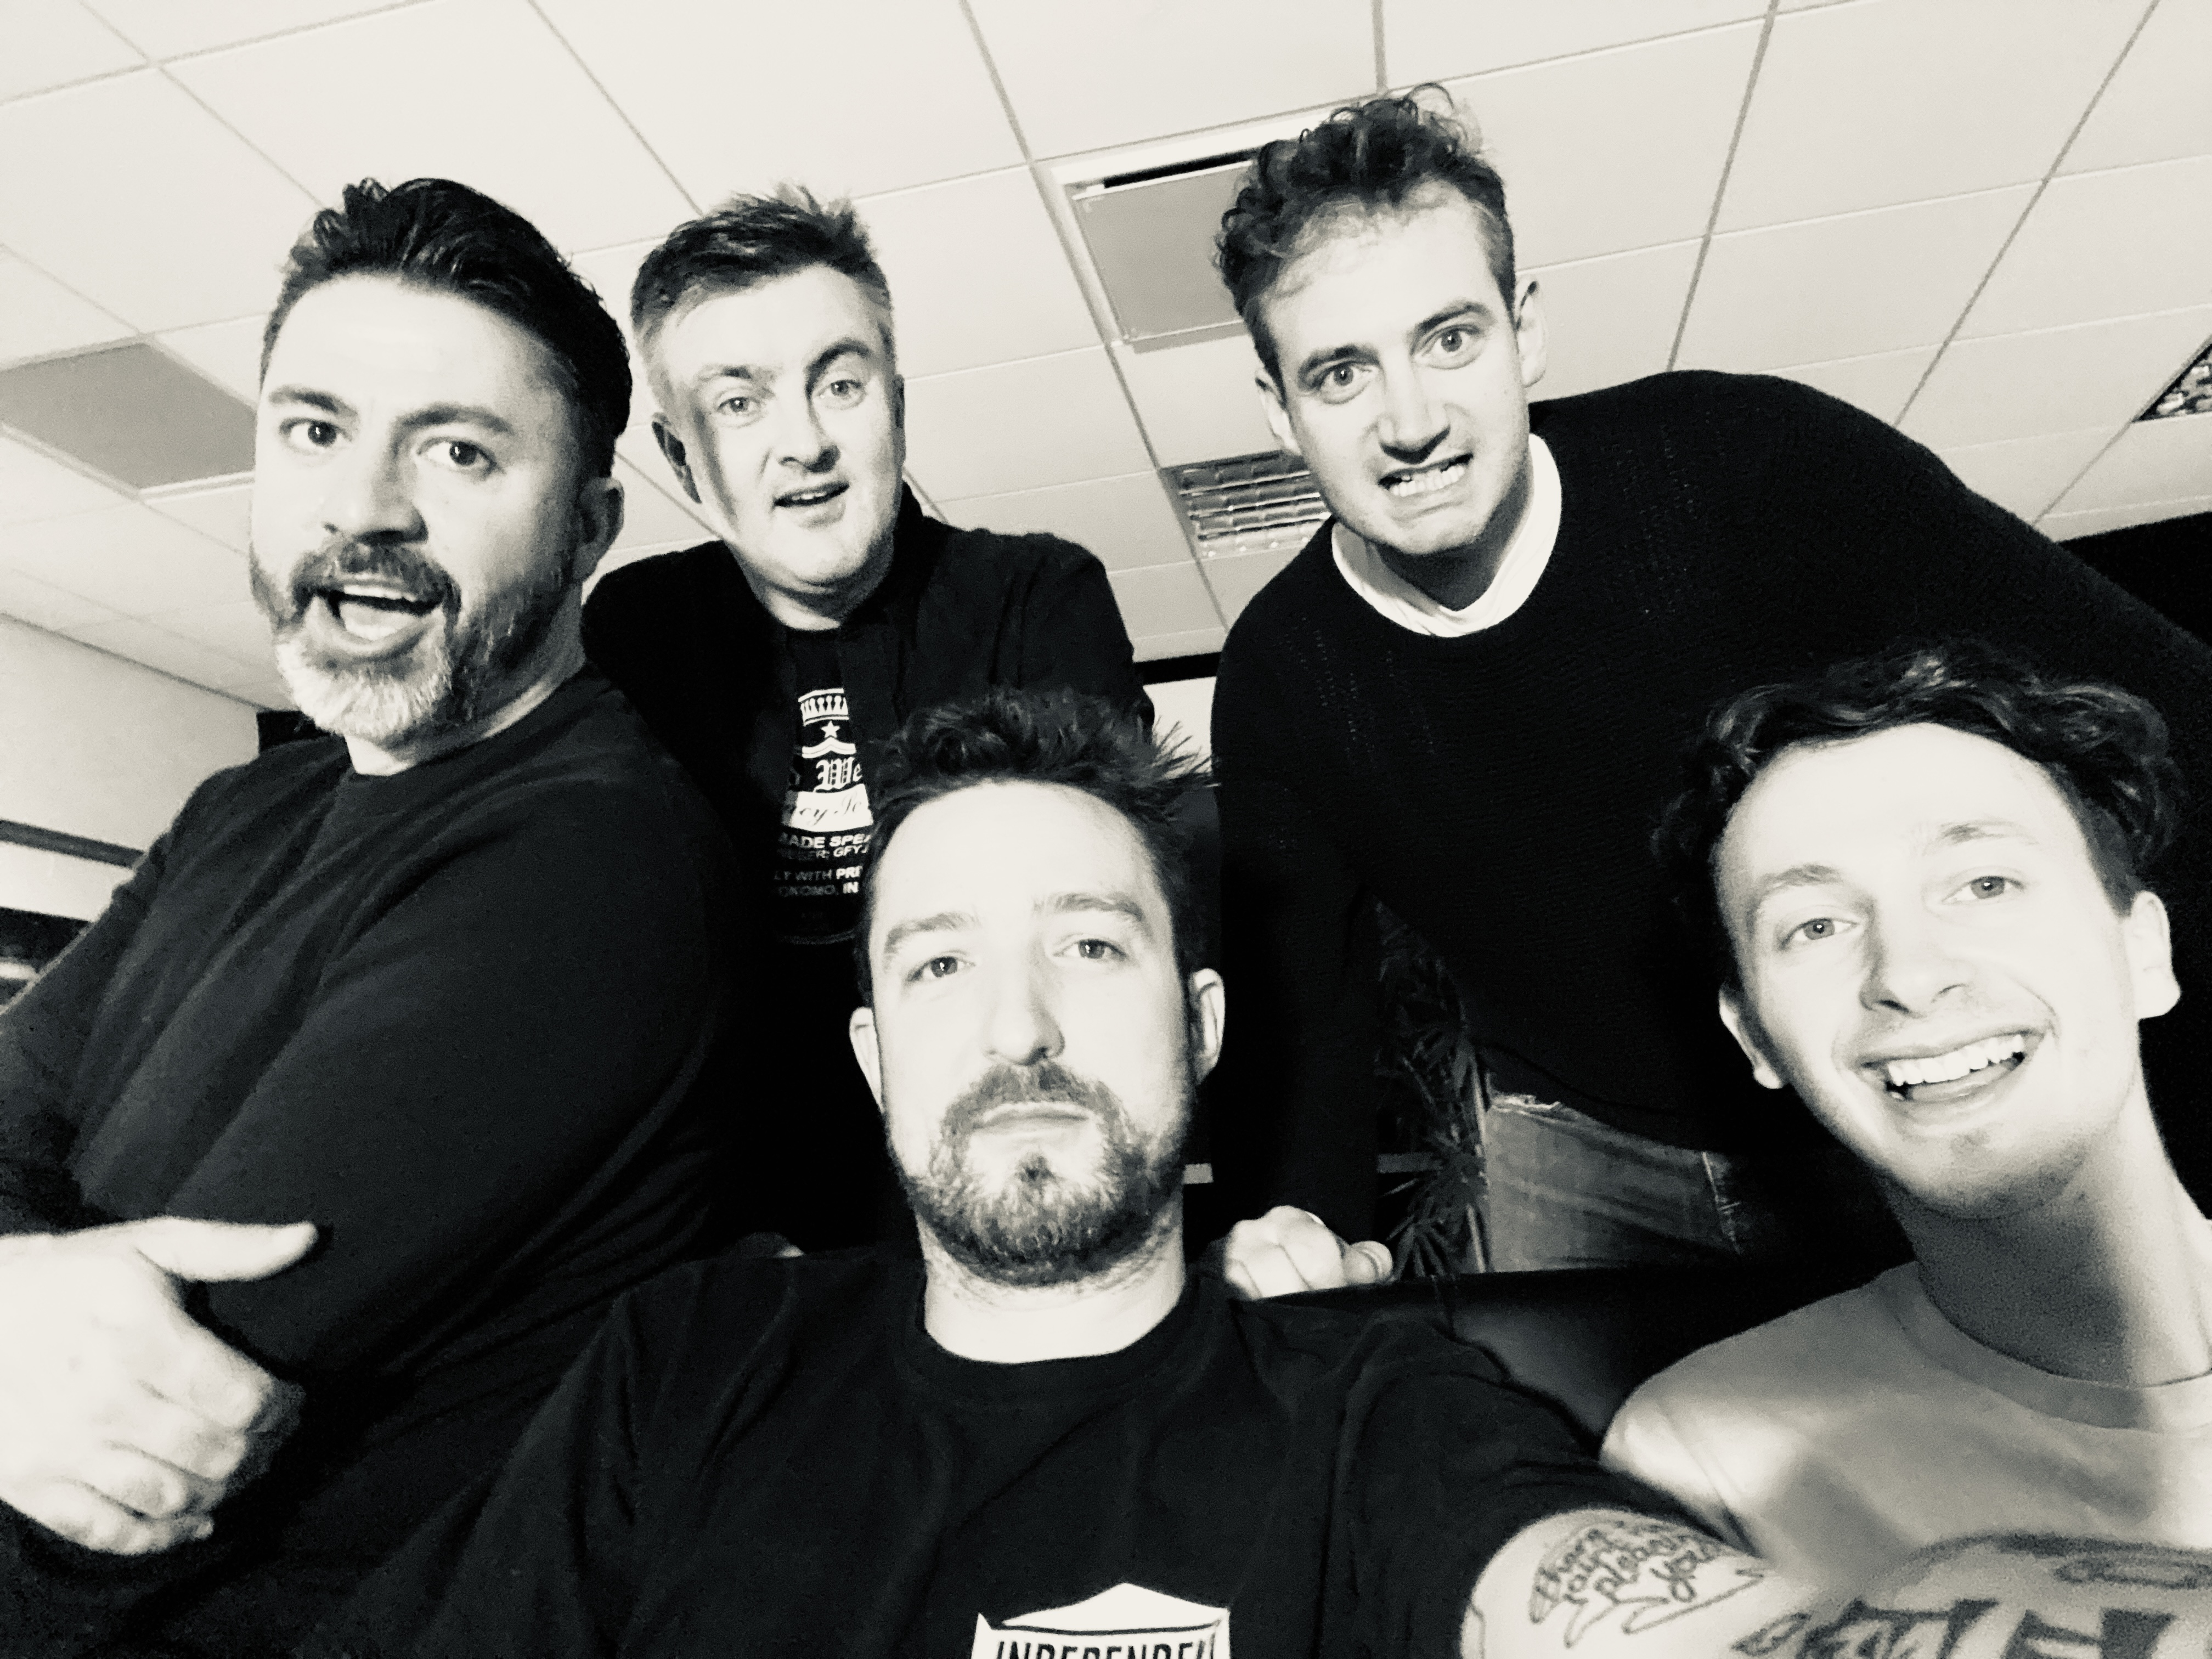 Sheer Music to Host Frank Turner and the Sleeping Souls UK Tour at Bath Forum